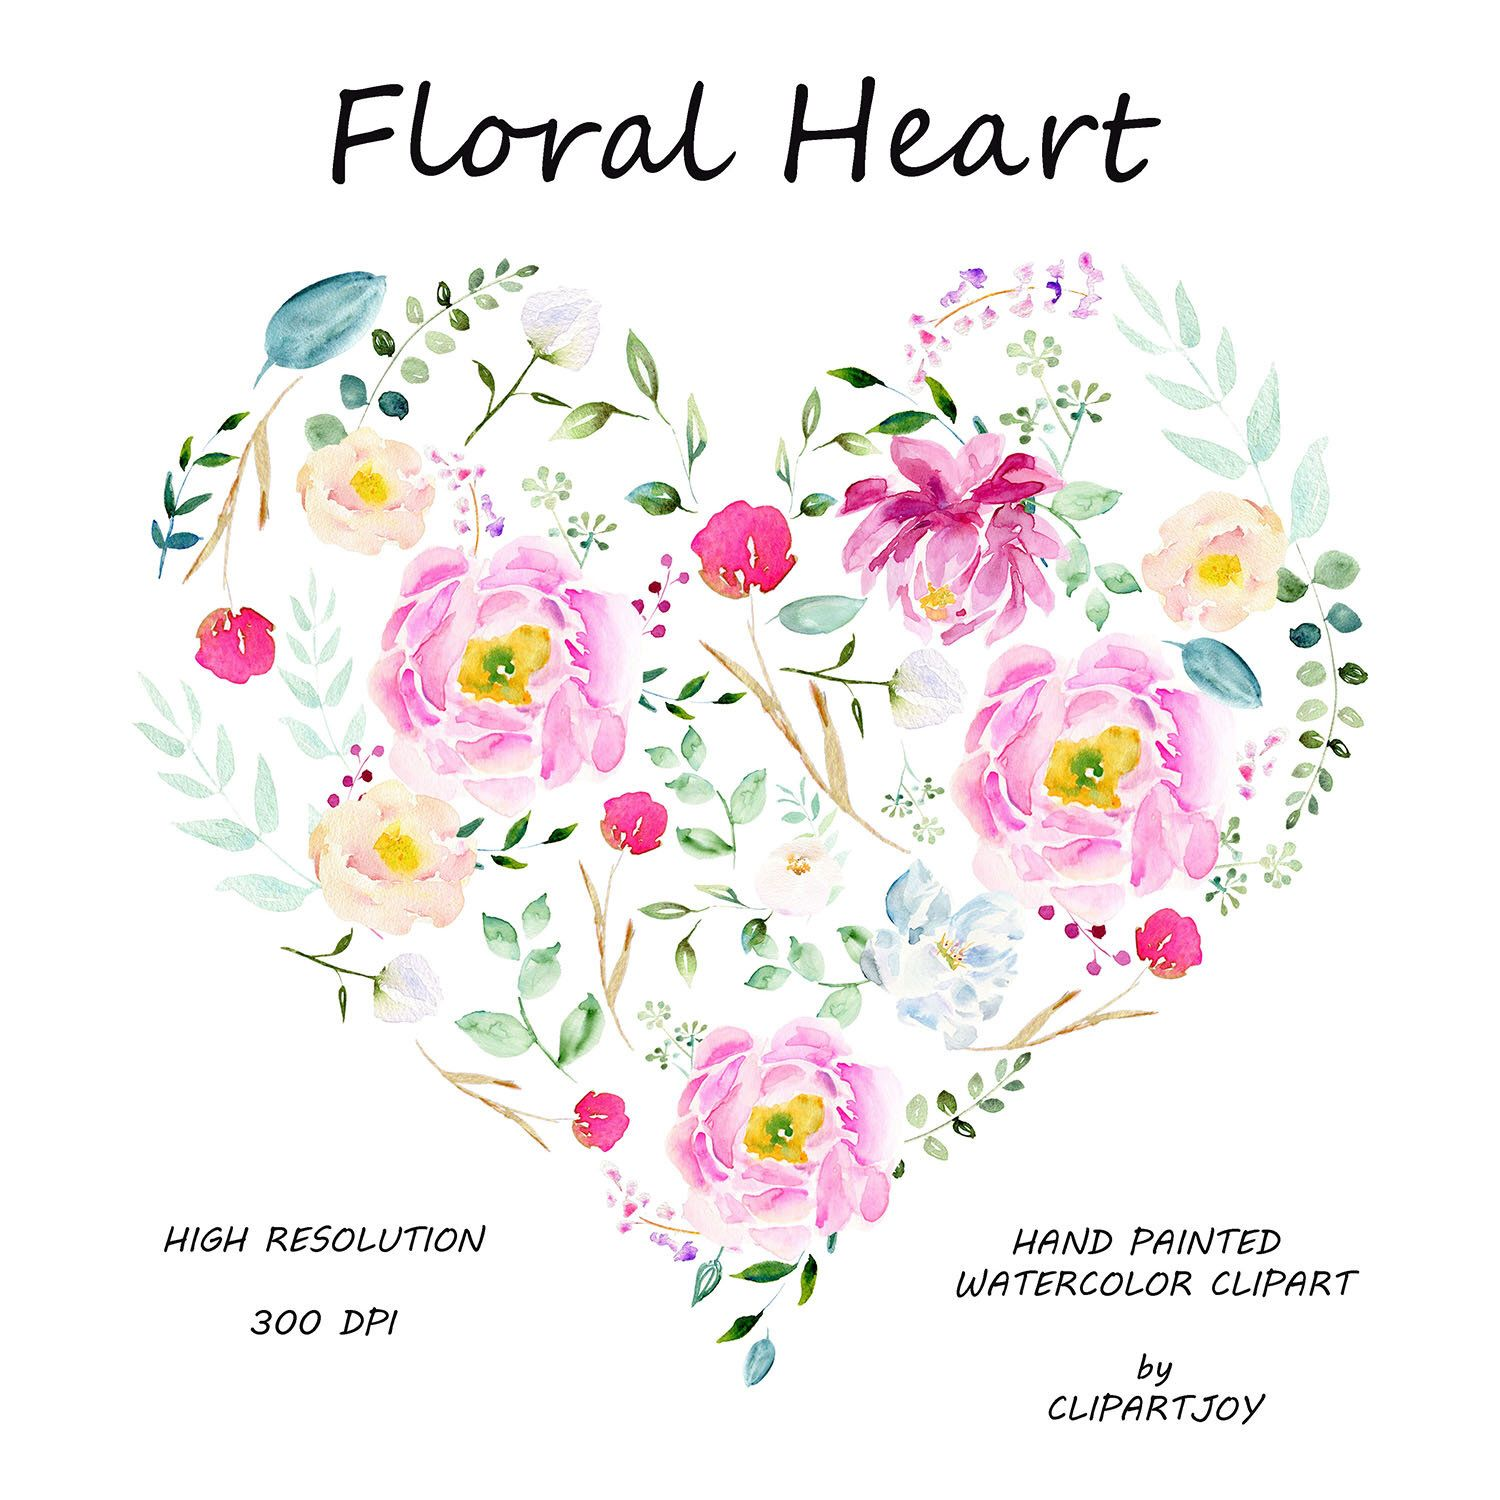 Floral Heart Flower Heart Watercolor Clipart Premade Botanical